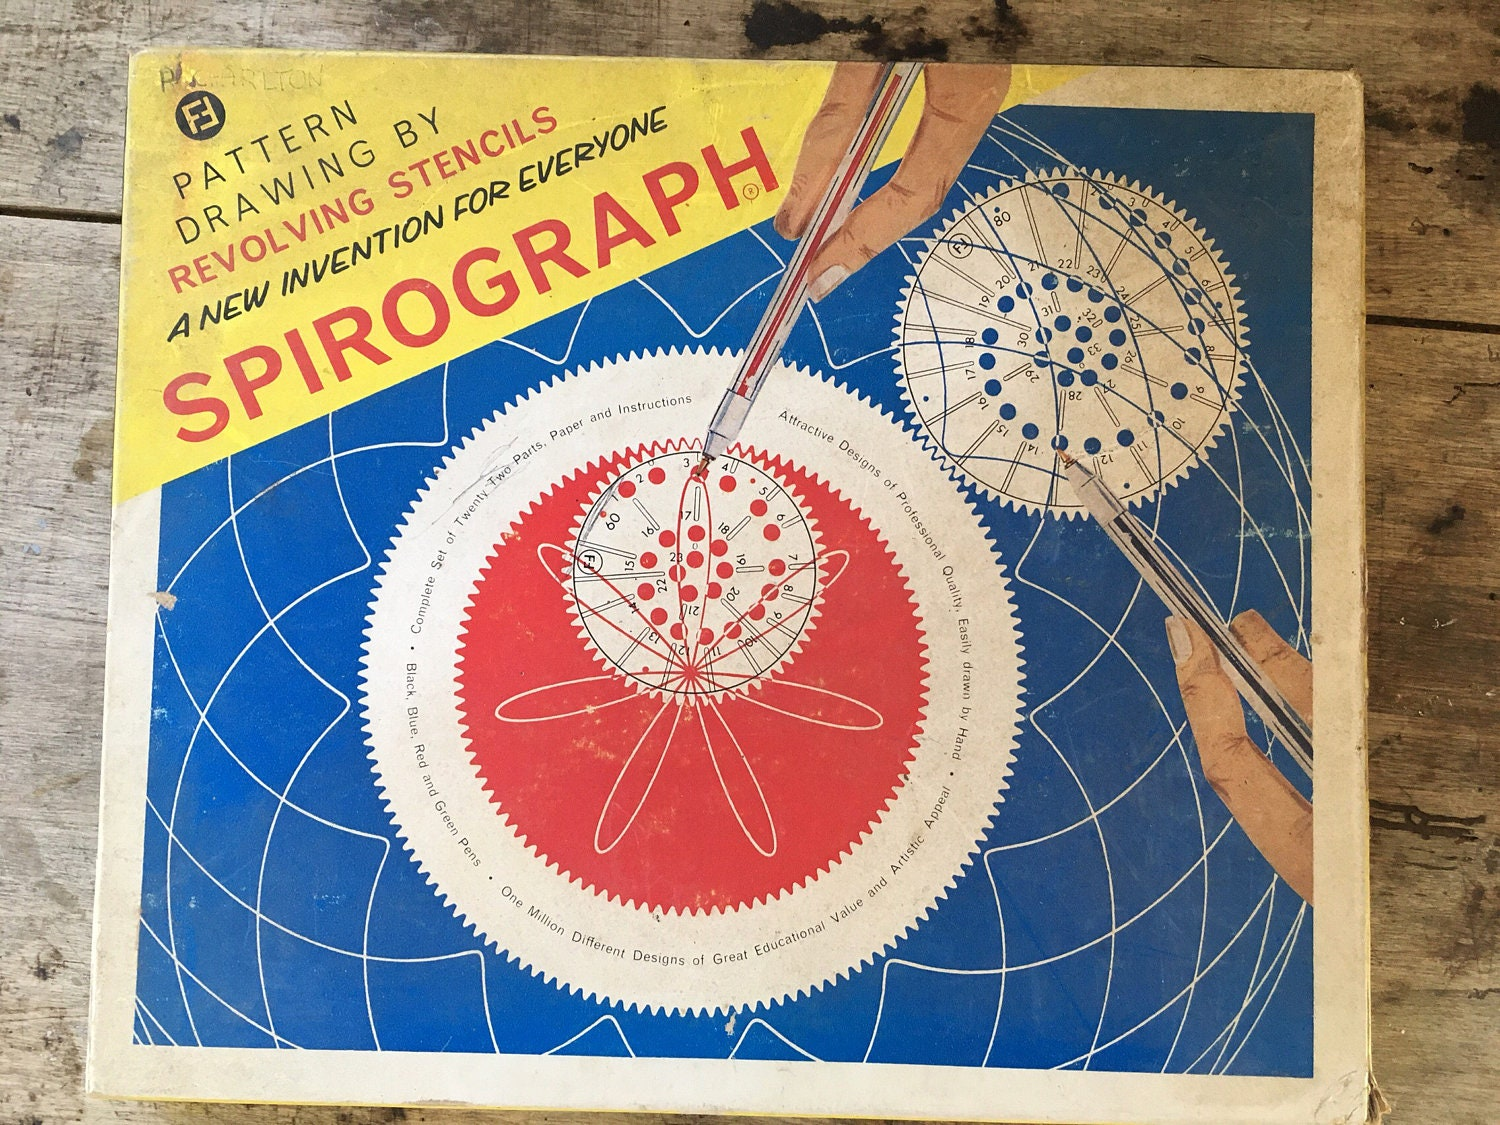 Spirograph Educational toy art toy pattern making retro toy 1970s game nostalgic toy drawing maths toy stencils creative toy